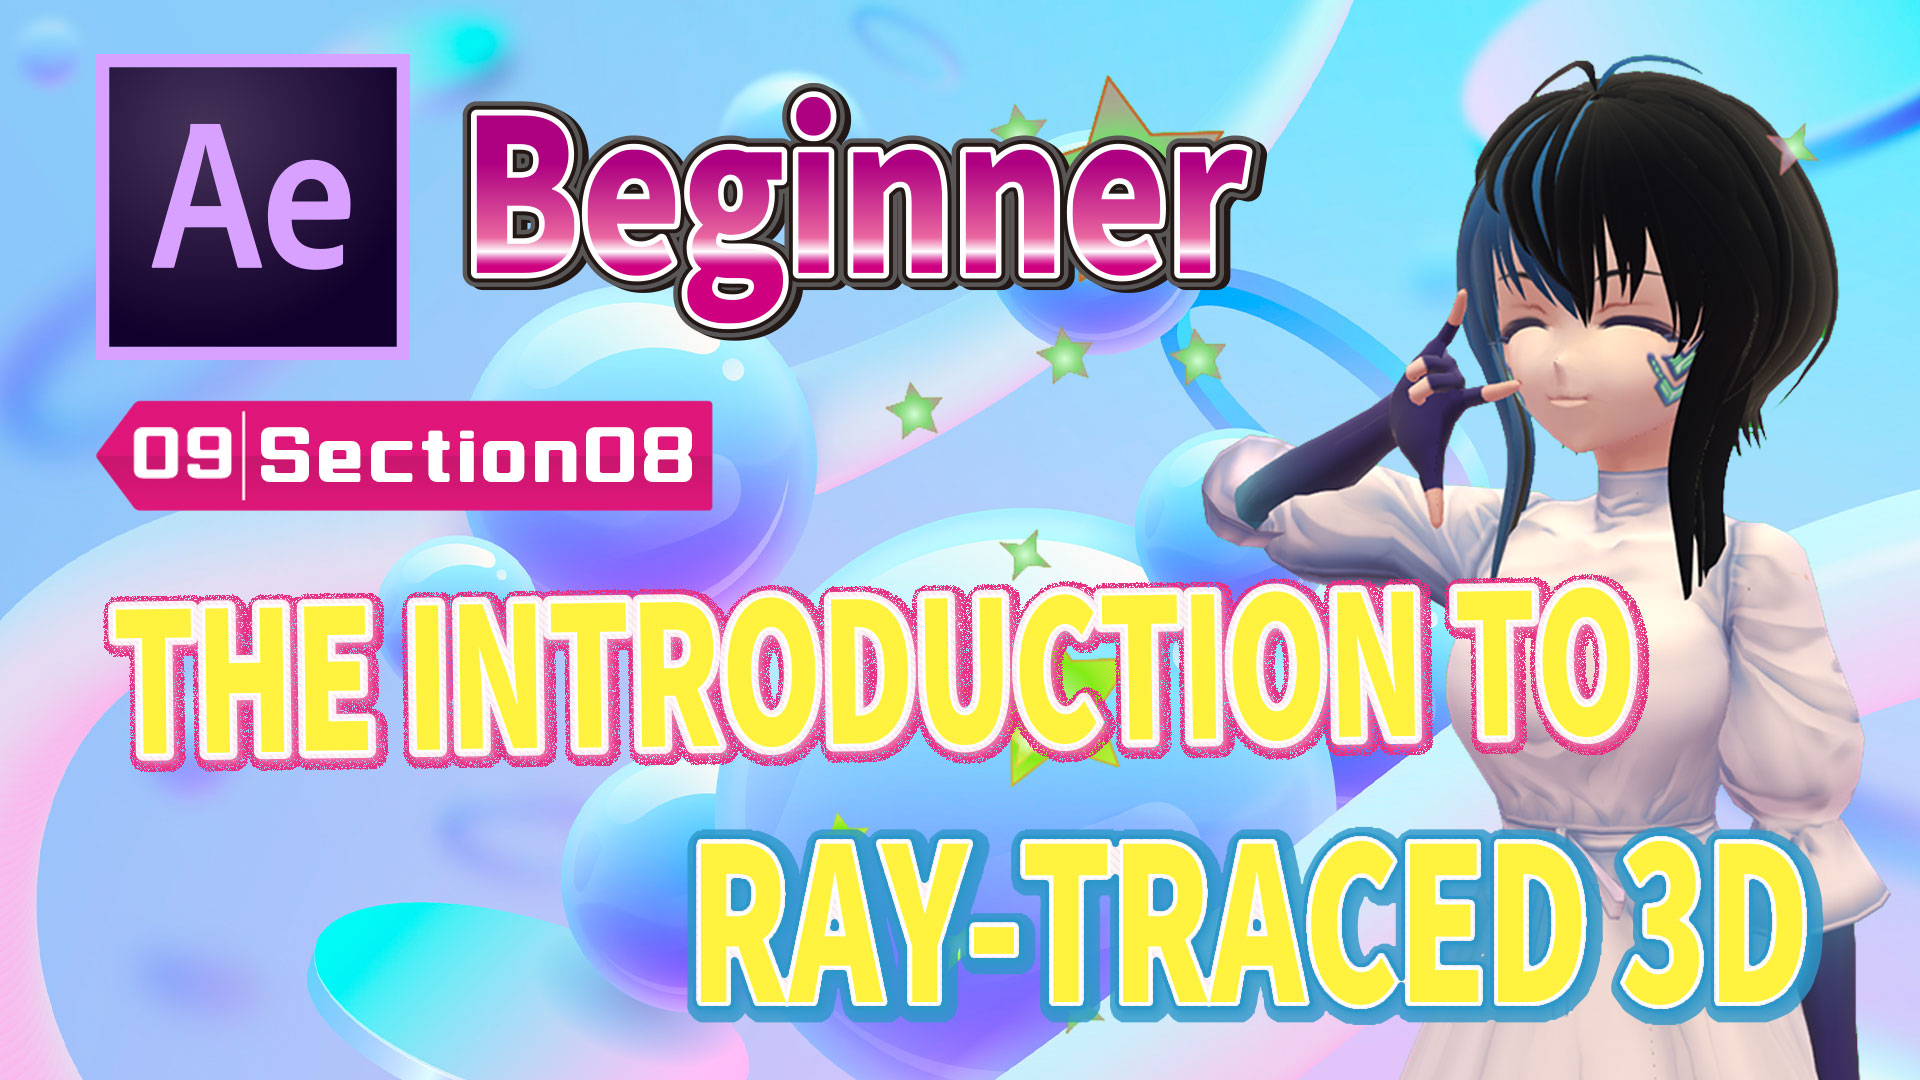 THE INTRODUCTION TO RAY-TRACED 3D